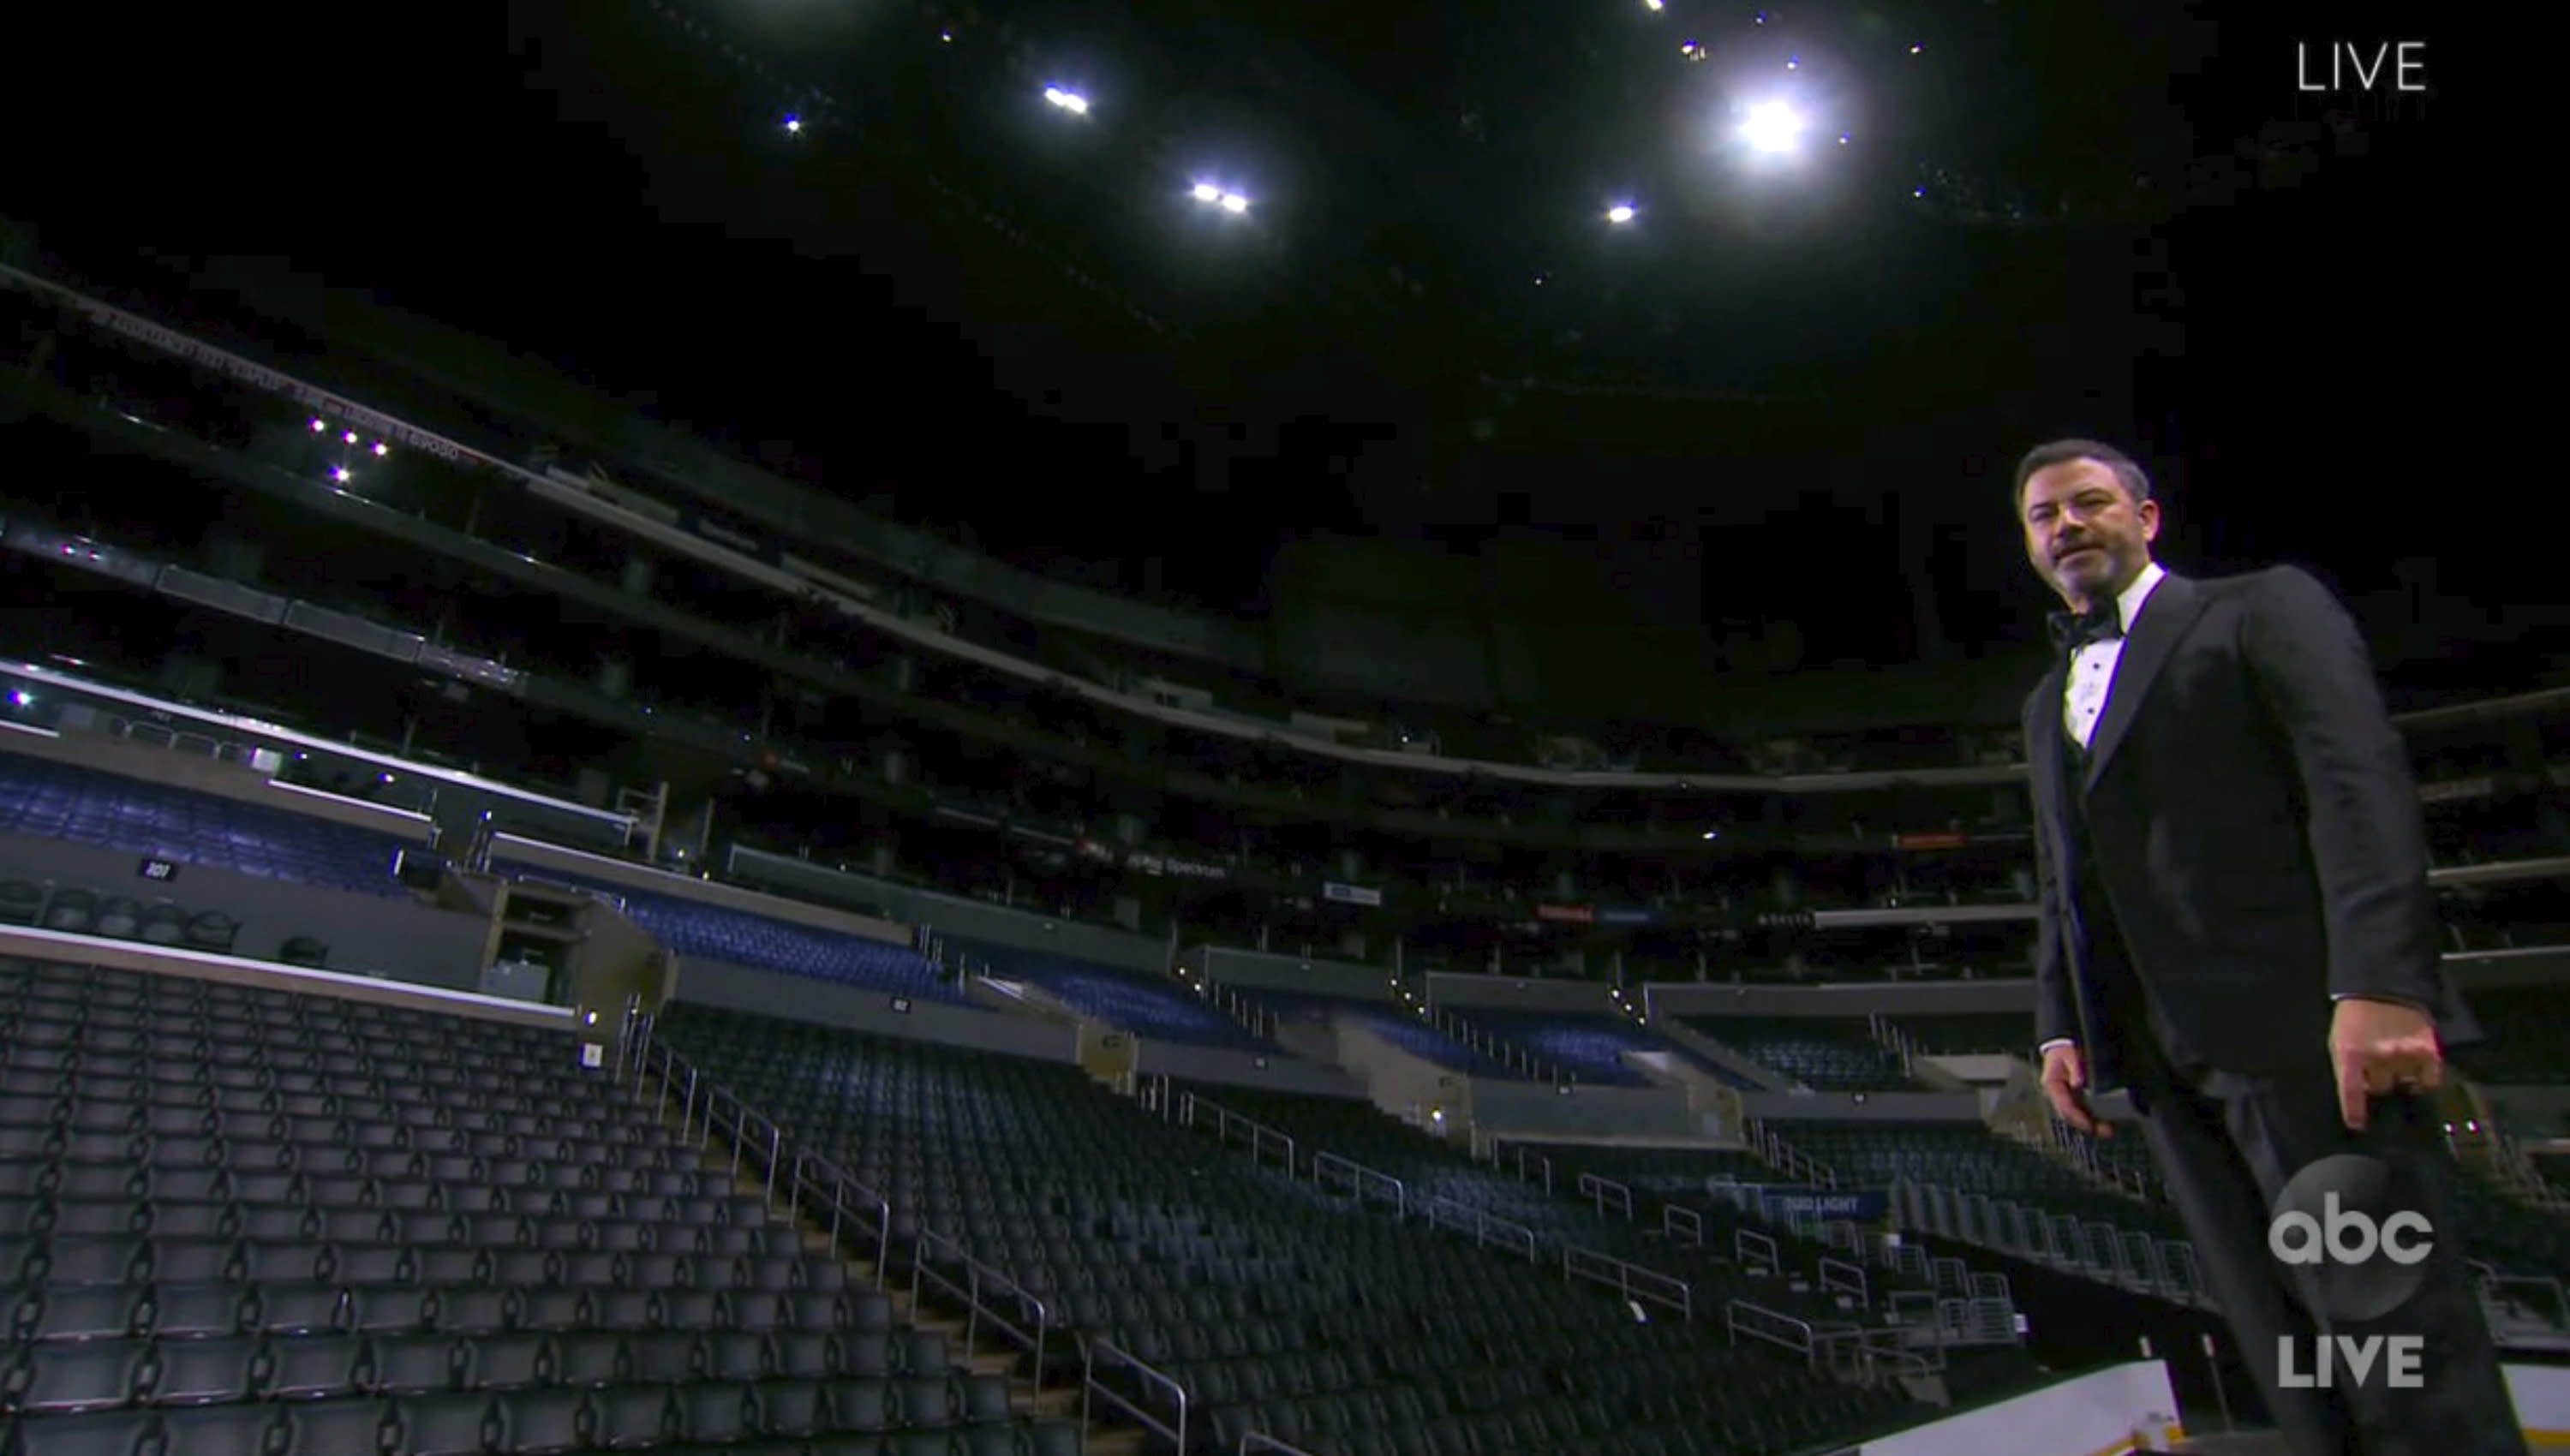 In this video grab captured on Sept. 20, 2020, courtesy of the Academy of Television Arts & Sciences and ABC Entertainment, host Jimmy Kimmel speaks on stage in front of empty seats during the 72nd Emmy Awards broadcast. (The Television Academy and ABC Entertainment via AP)